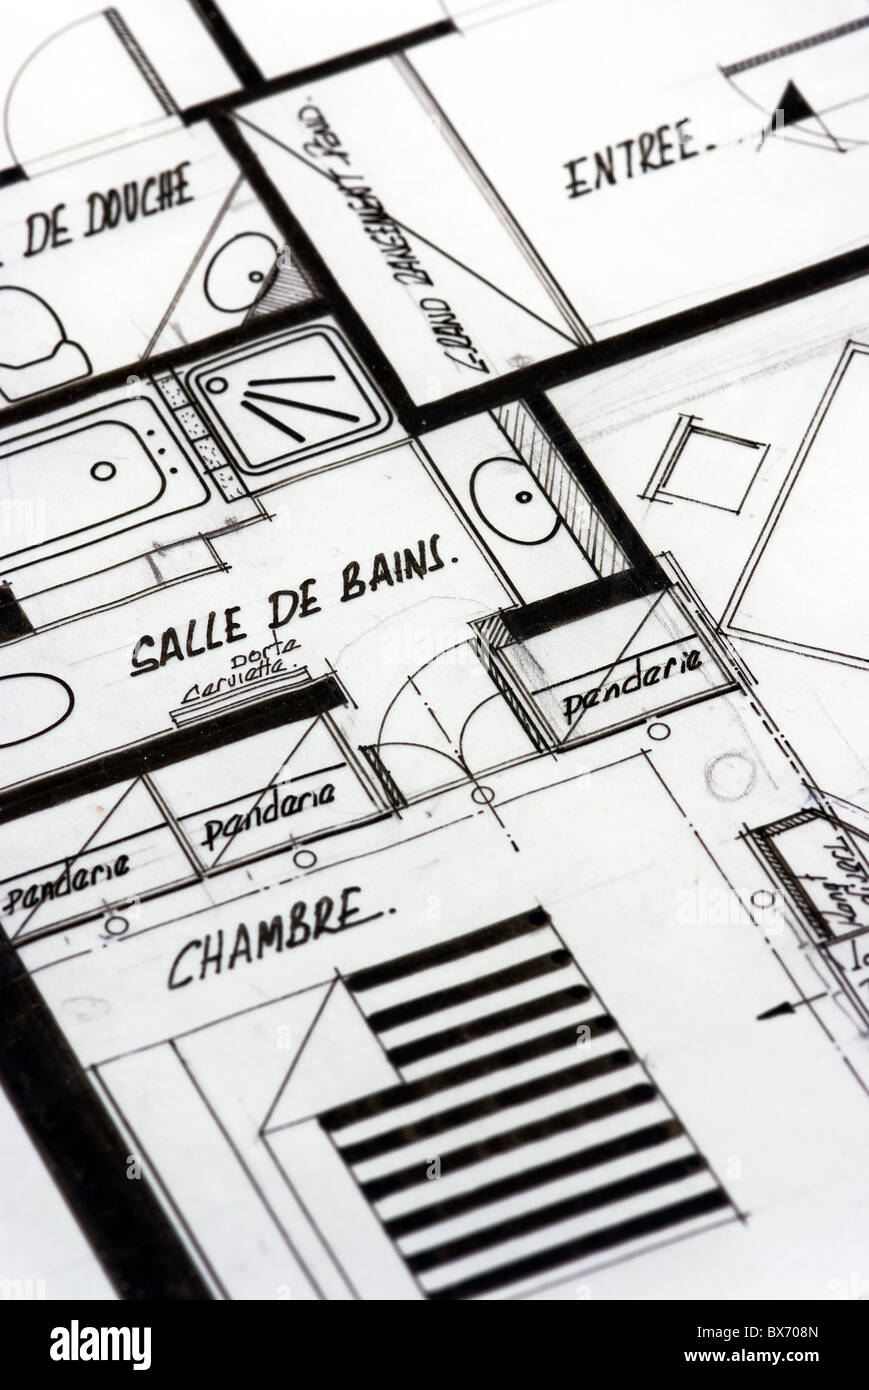 apartment blueprints in french stock photo royalty free image apartment blueprints in french